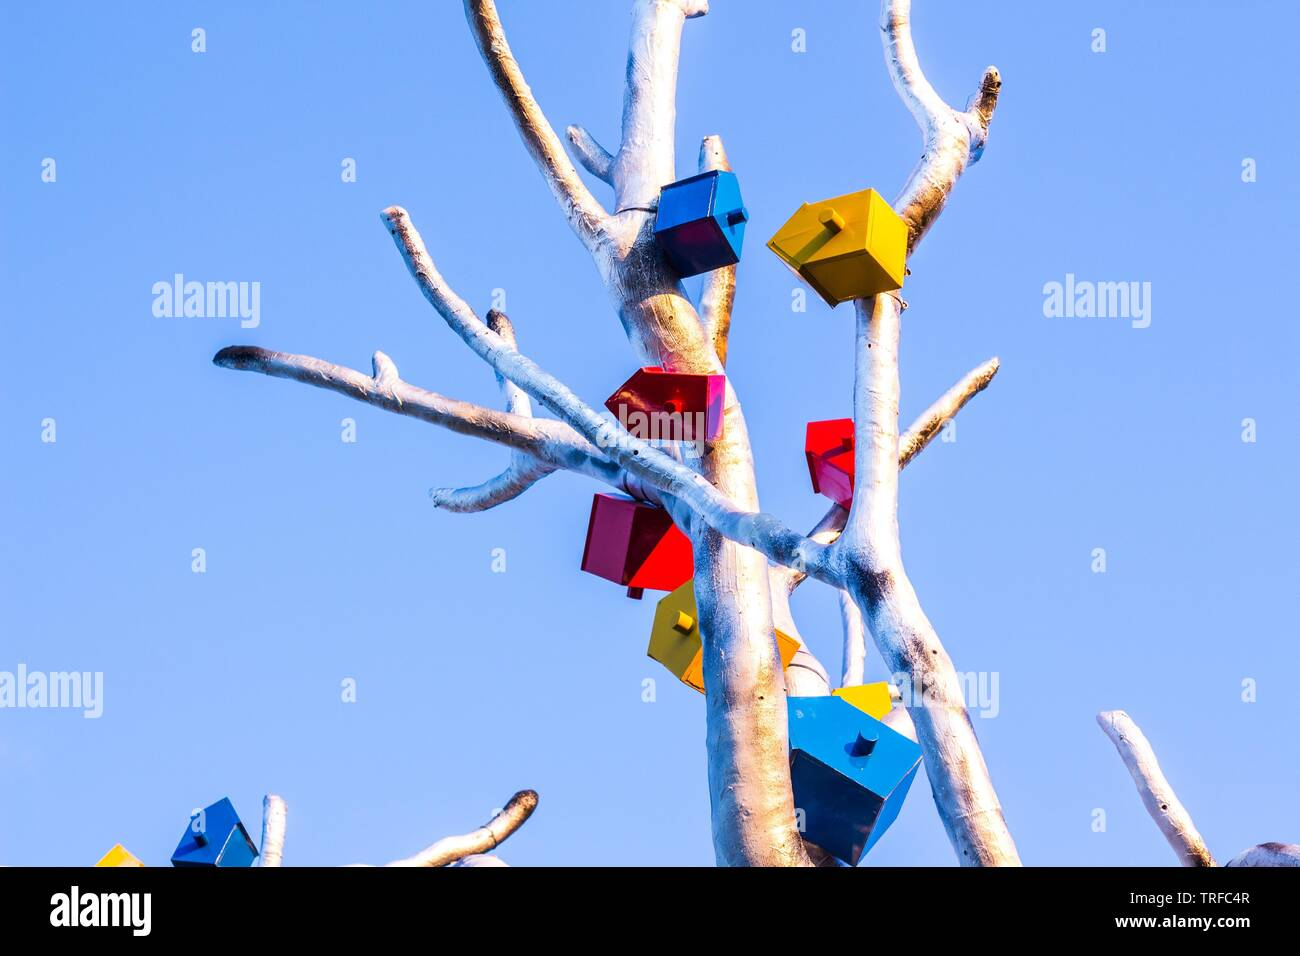 Feeders for birds are attached to a tree made of metal. The tree is against the blue and clear sky - Stock Image